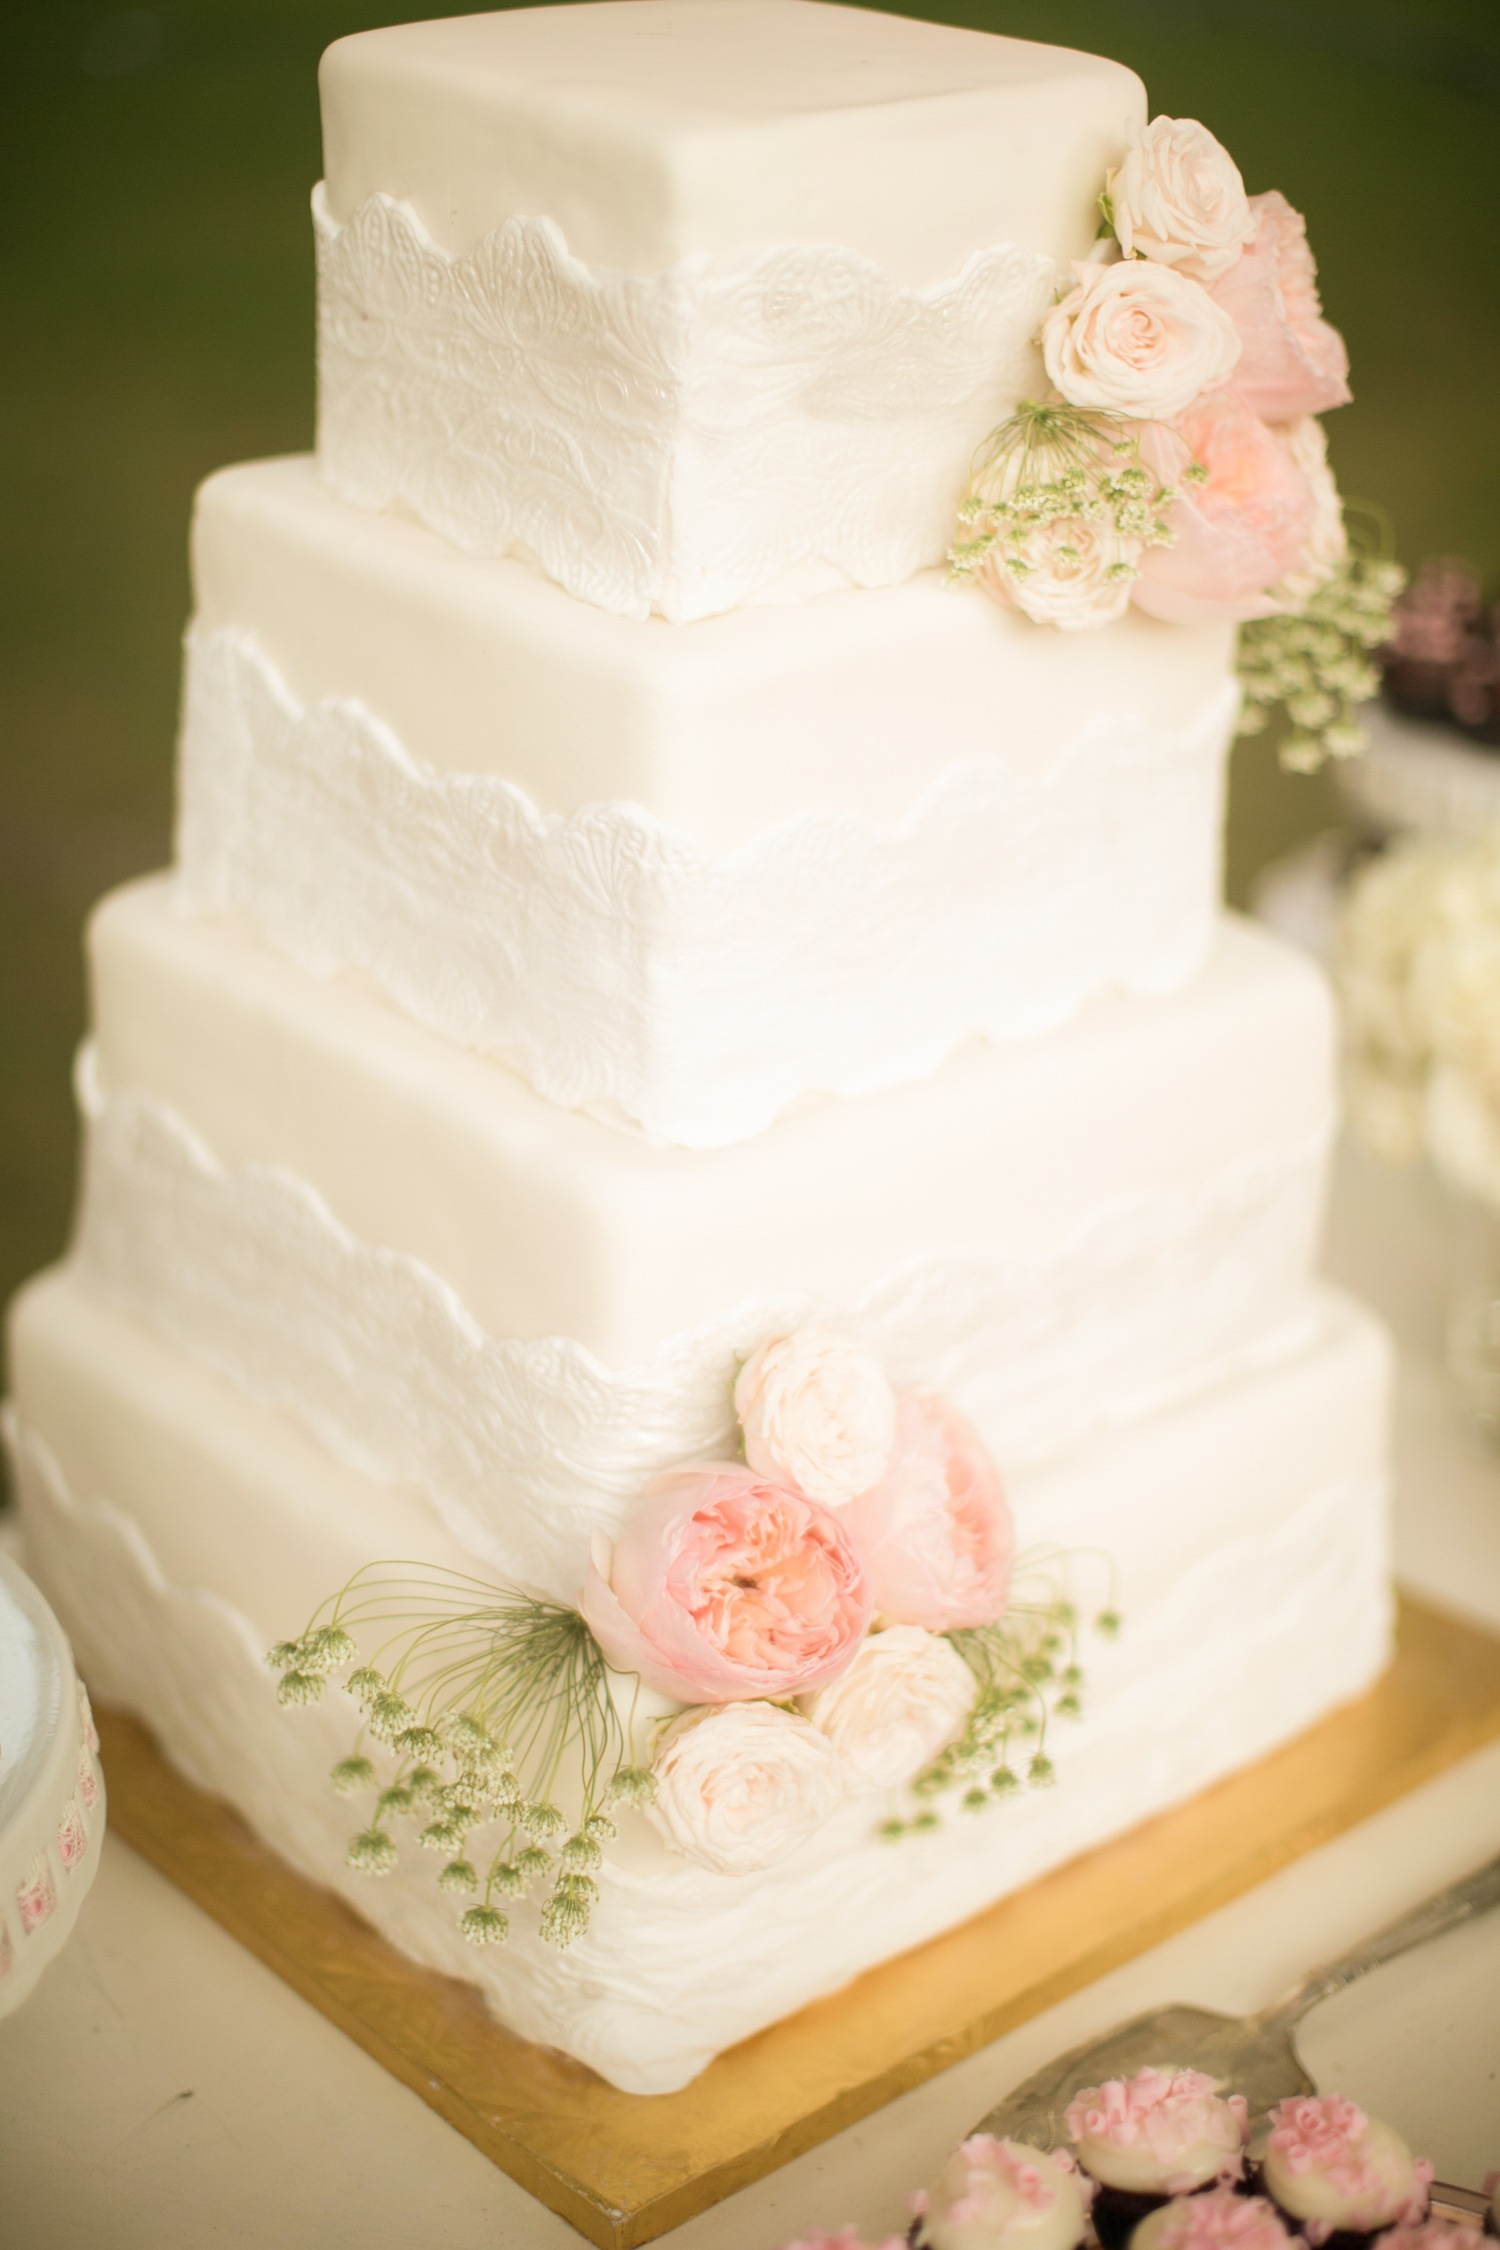 White shabby chic wedding cake with lace pattern